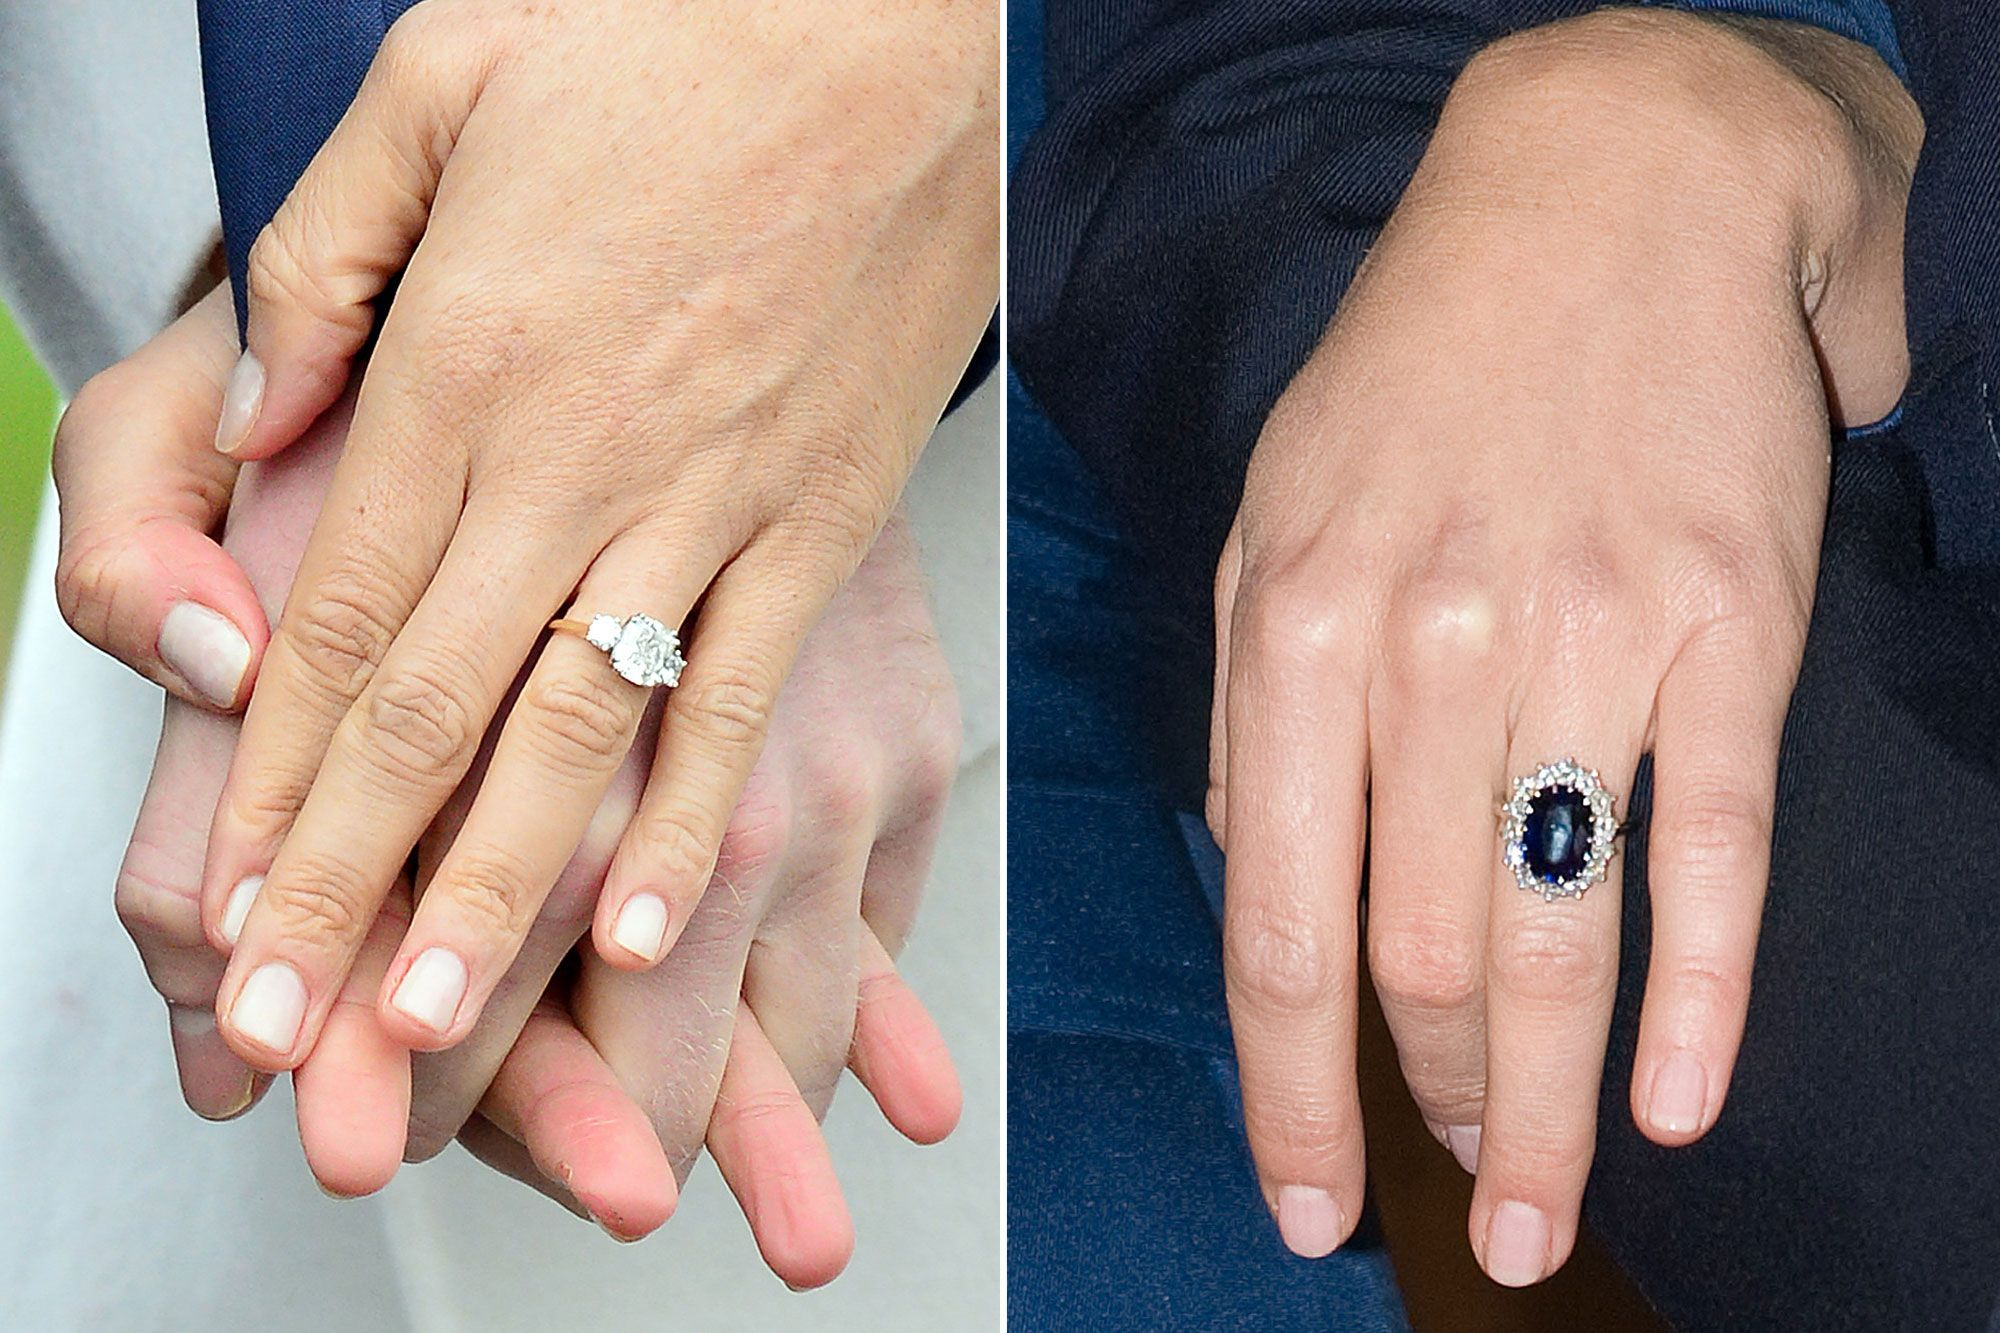 the rings the dresses comparing meghan markle and kate middleton s engagement photos kate middleton engagement ring royal engagement rings meghan markle engagement ring kate middleton engagement ring